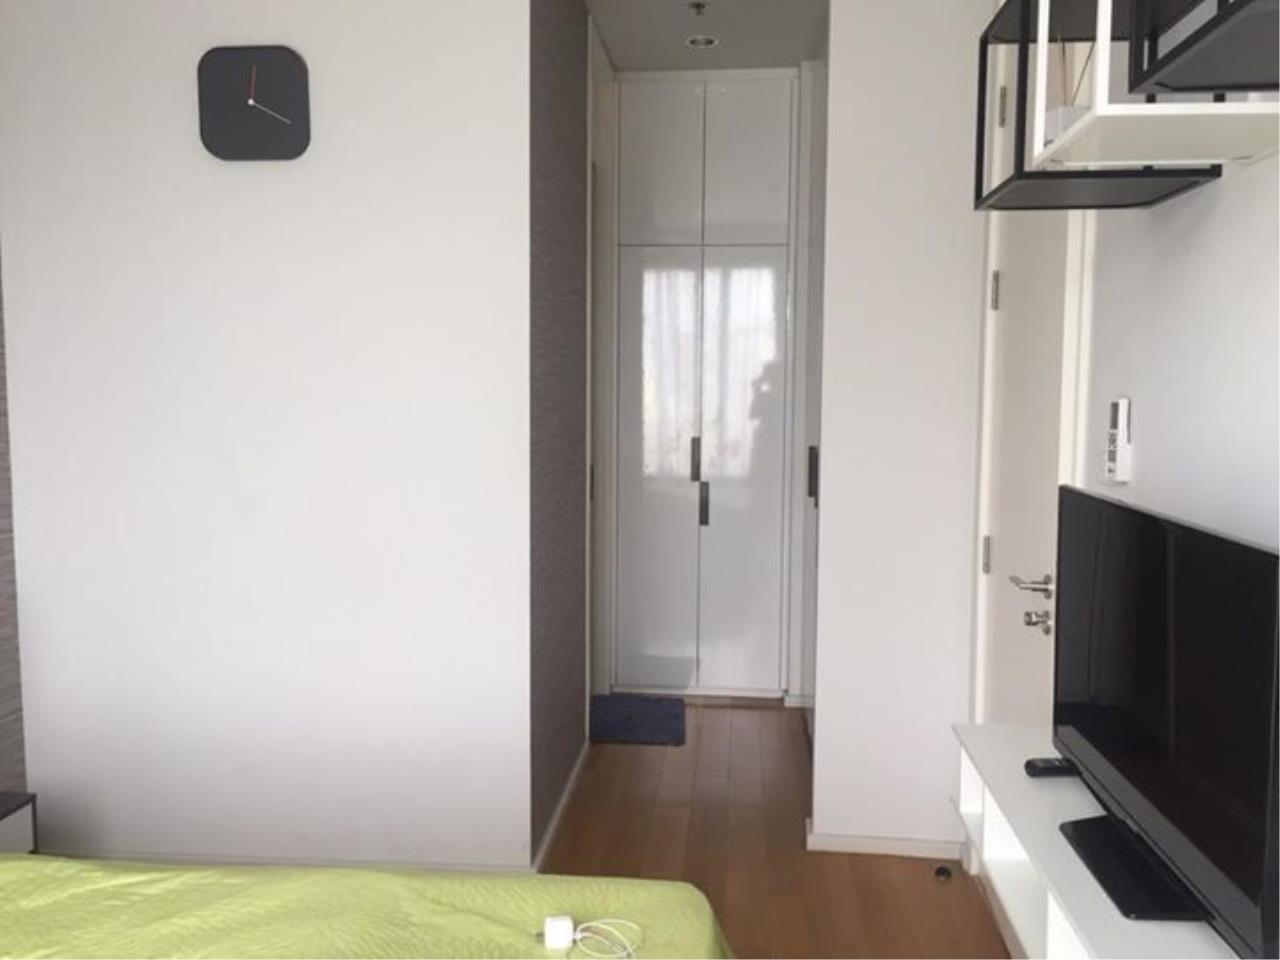 Agent - Thitiporn Sriboola Agency's M Condo Ladprao, condo high rise for rent, 300 meters to ladprao mrt station bangkok 7